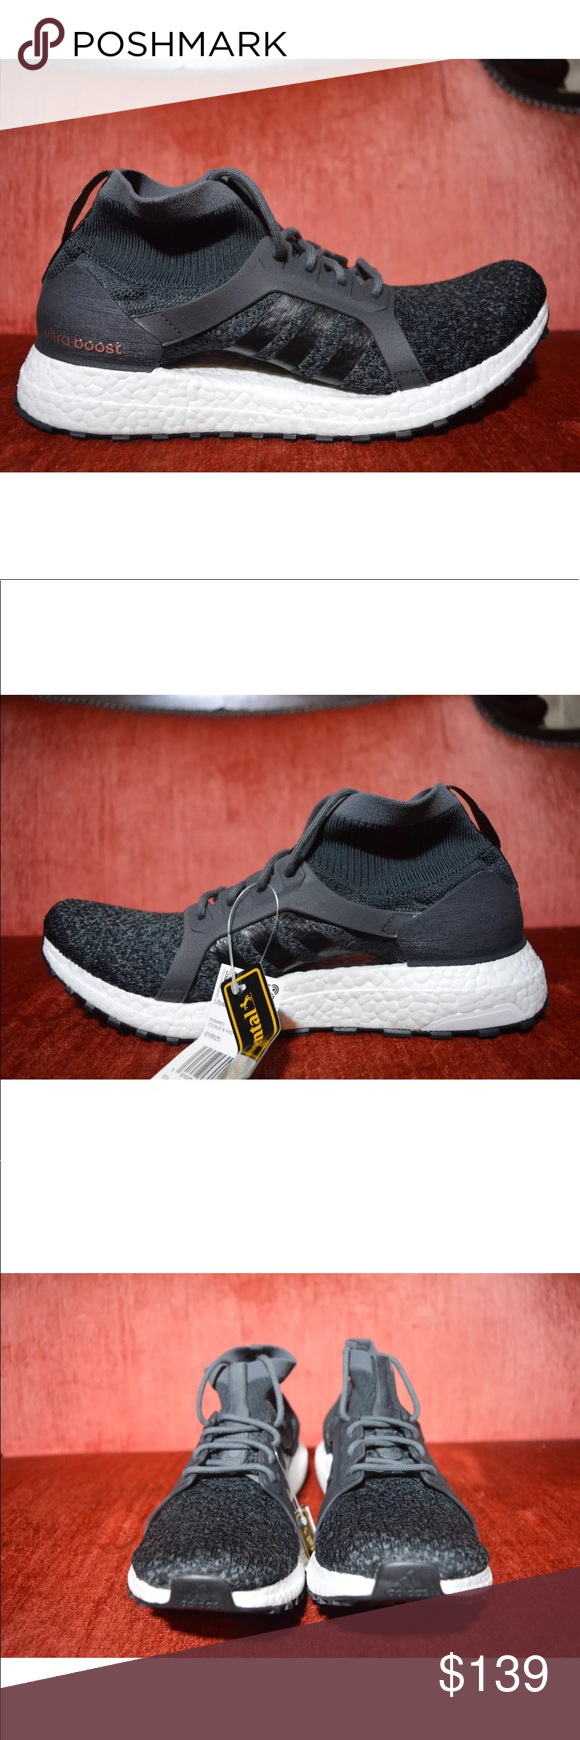 d1dff1cd6 Adidas Womens UltraBoost X Shoes Carbon Black Sz 7 Adidas Women s  UltraBoost X All Terrain Running Shoes Carbon Black Sz 8 BY8925 new with  out box adidas ...